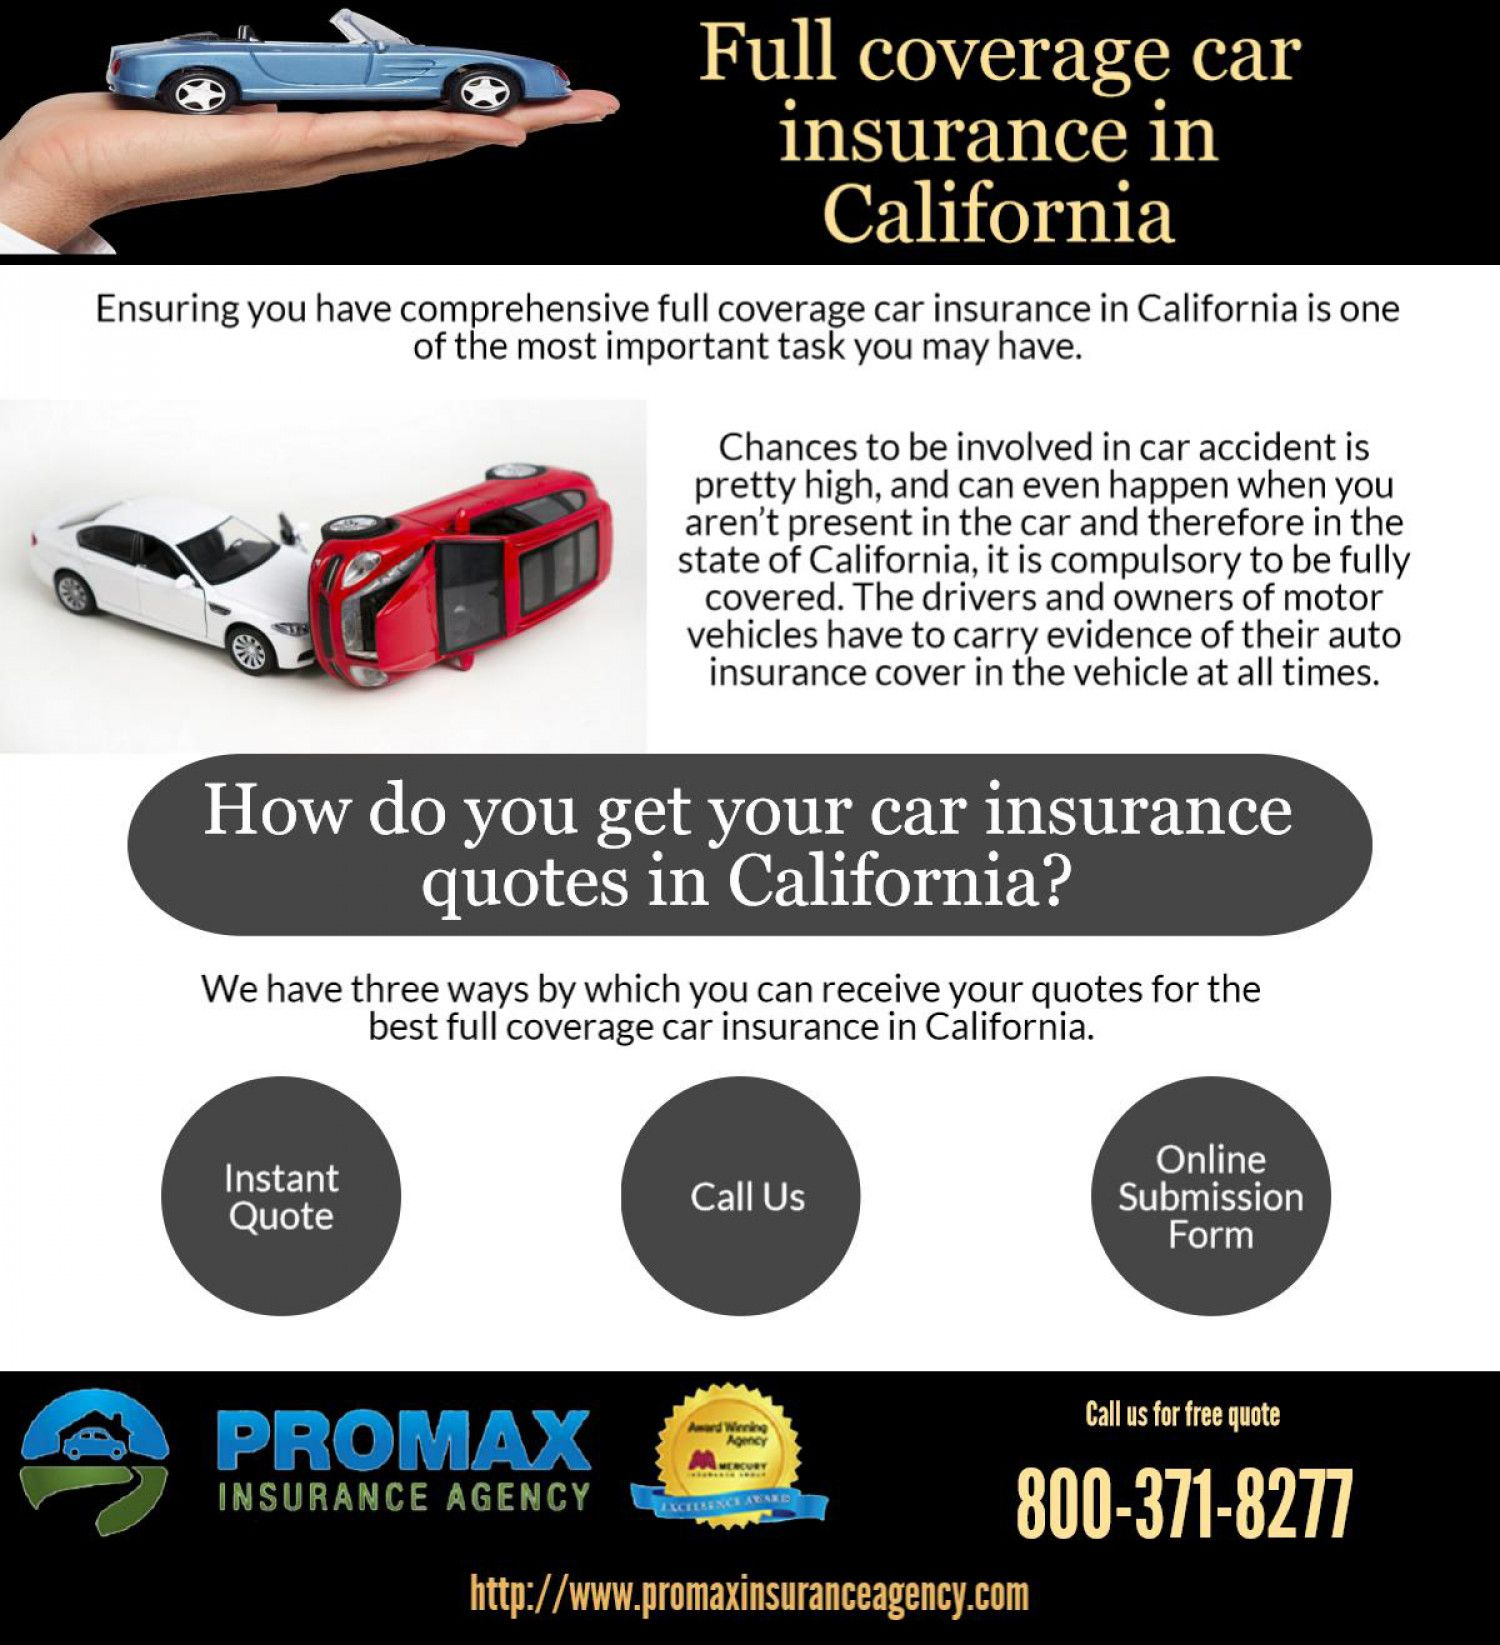 Promax Insurance Agency is a reputable broker with a team